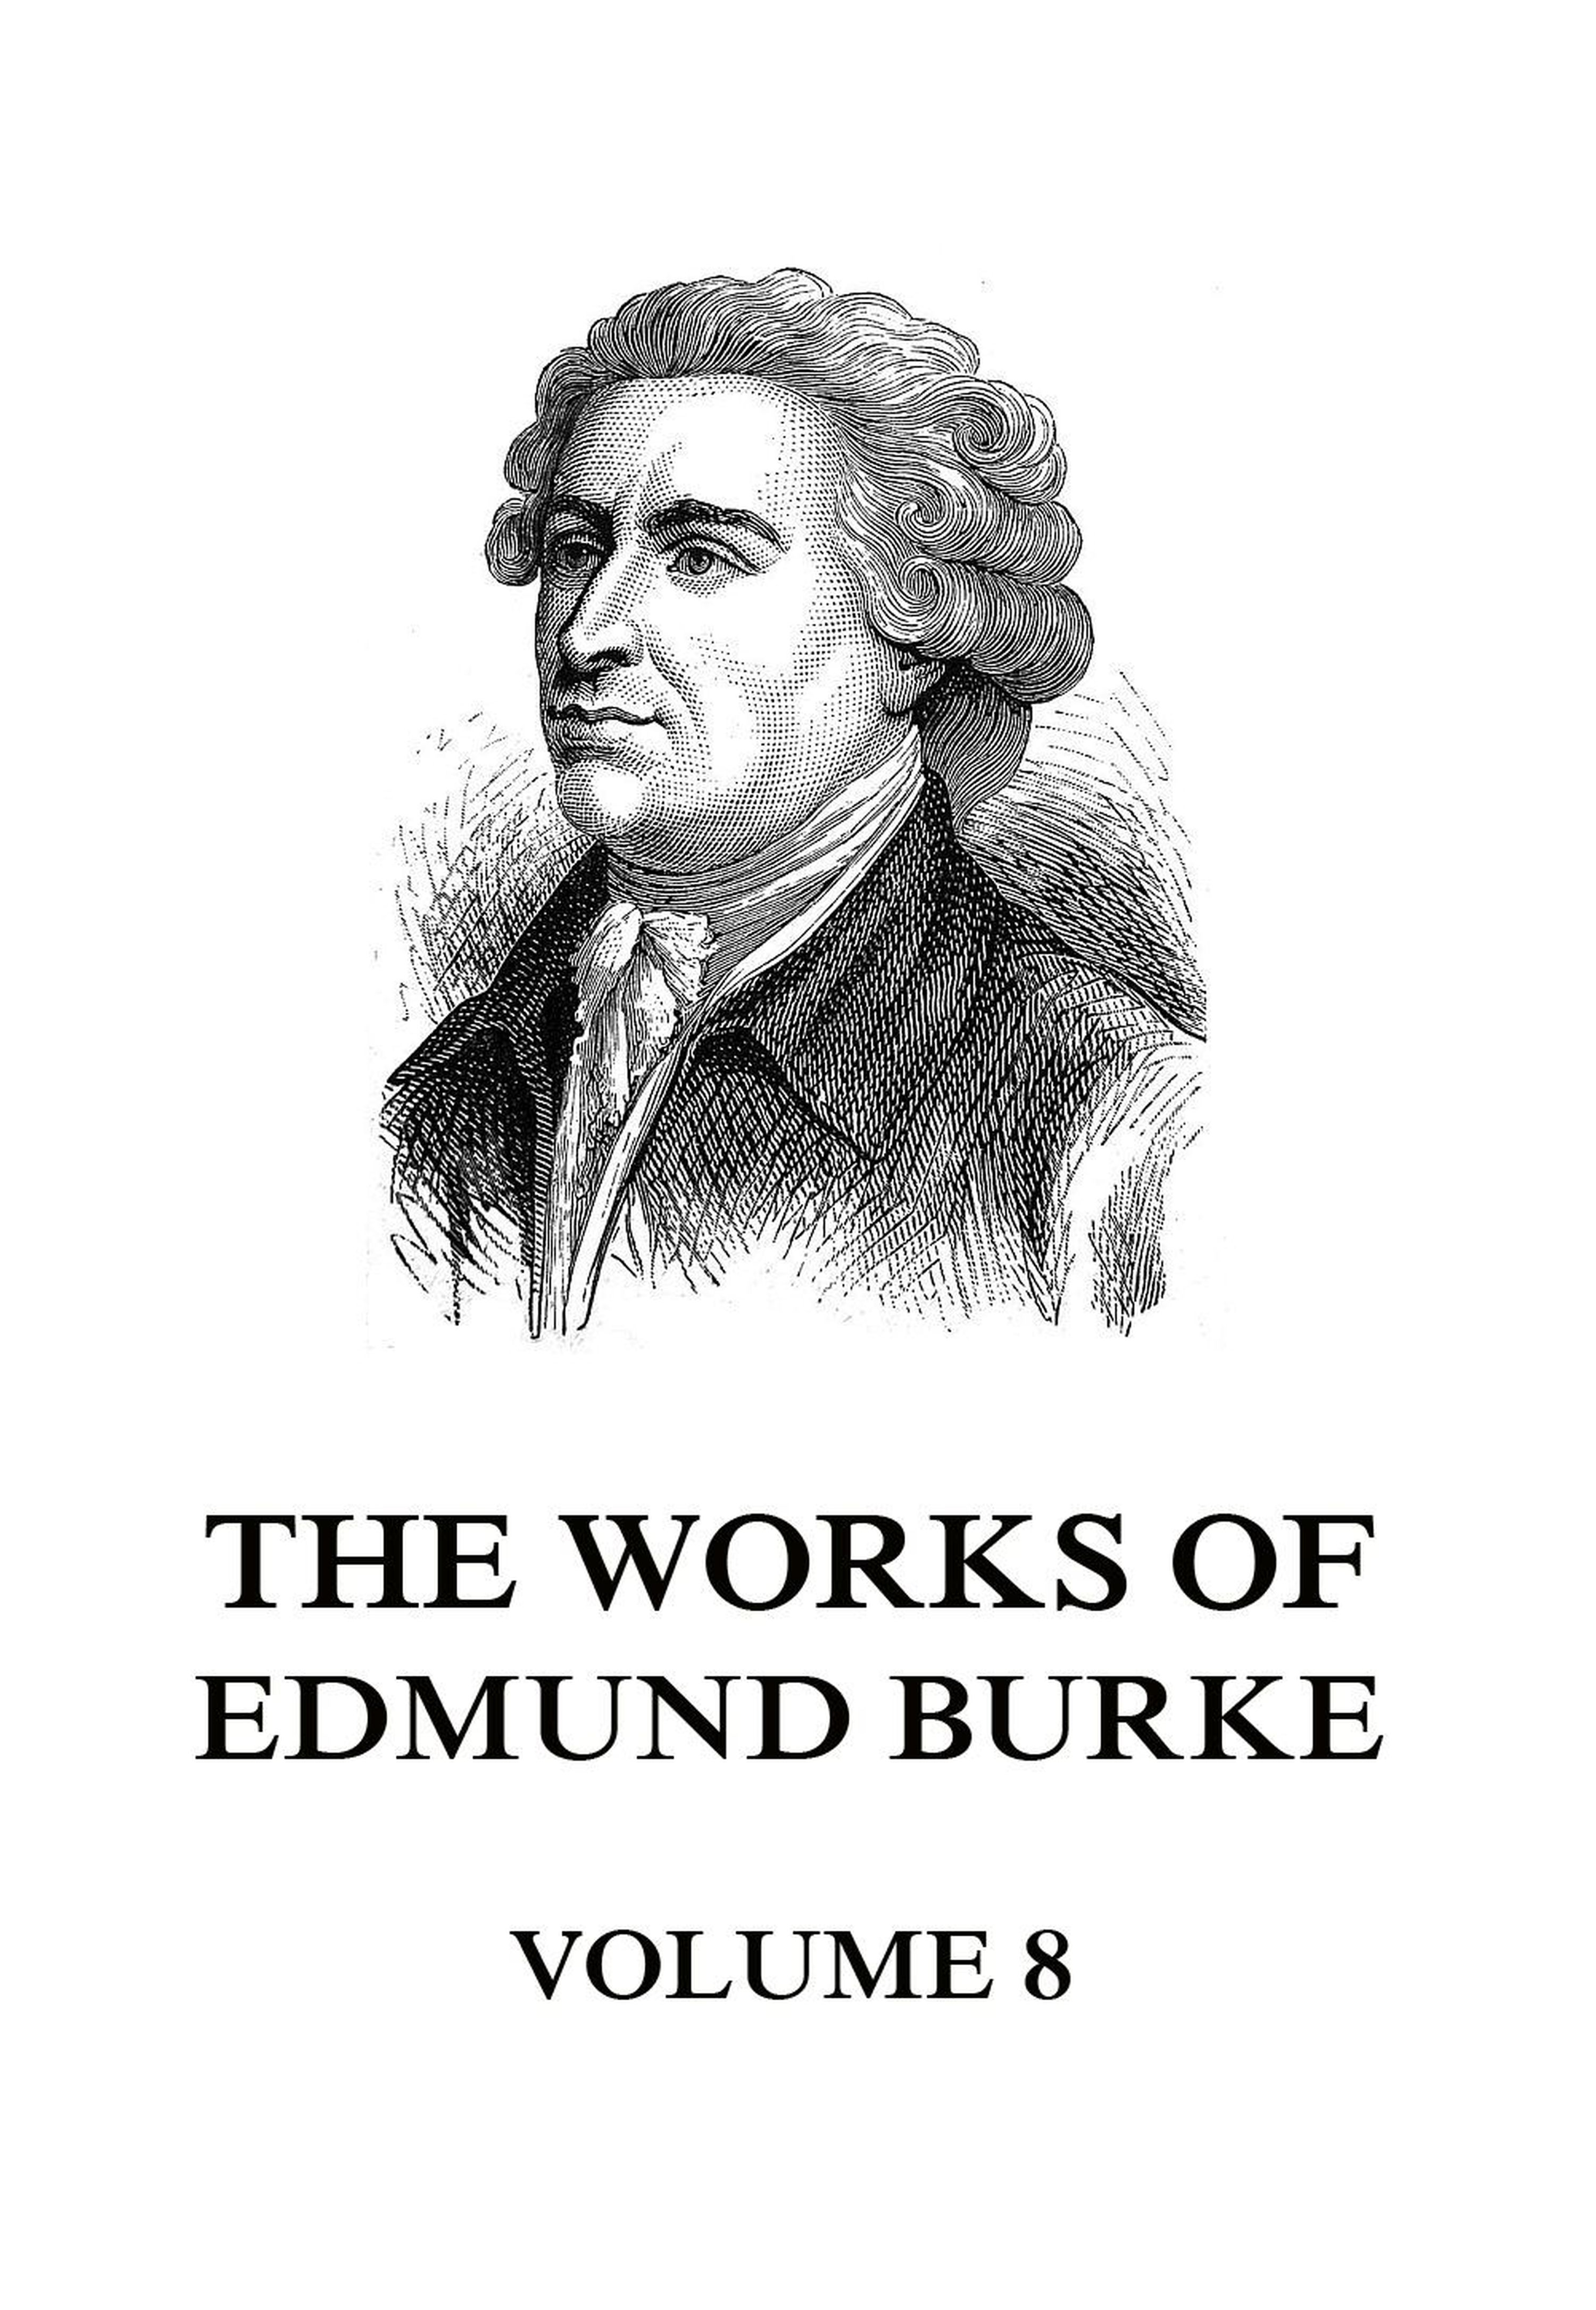 The Works of Edmund Burke Volume 8